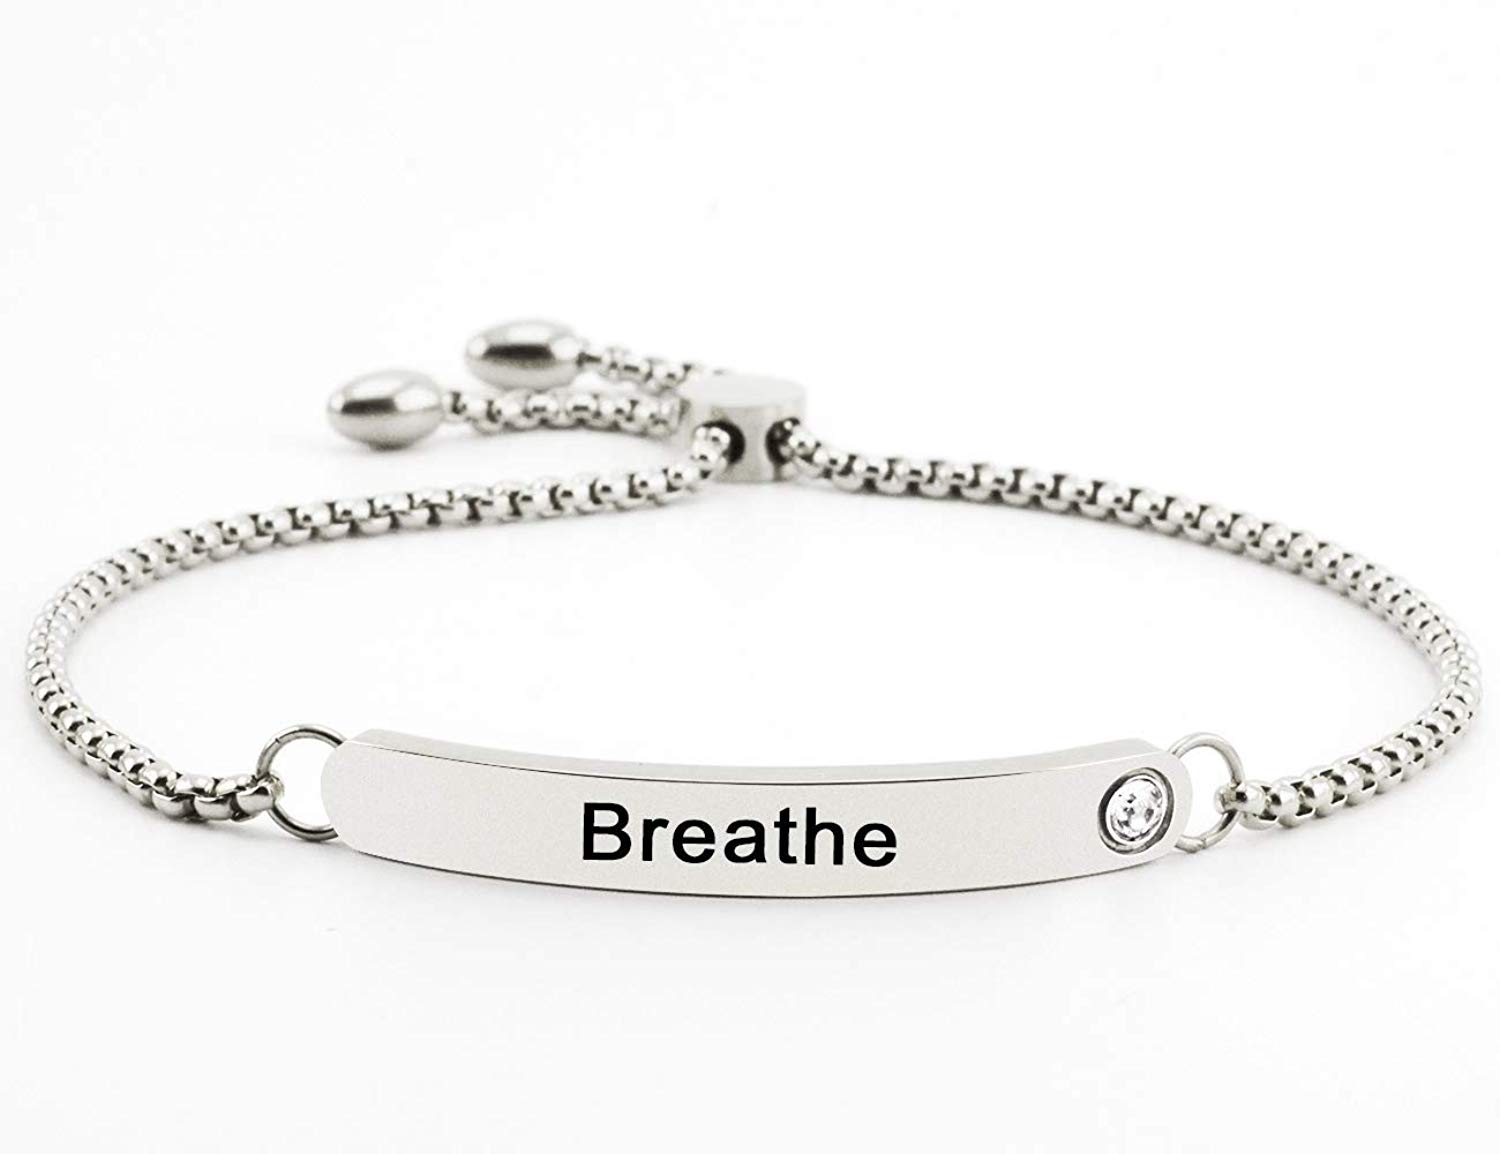 Goodfully Personal Mantra Message Cuff Bracelet Inspirational Motivational Quote Jewelry